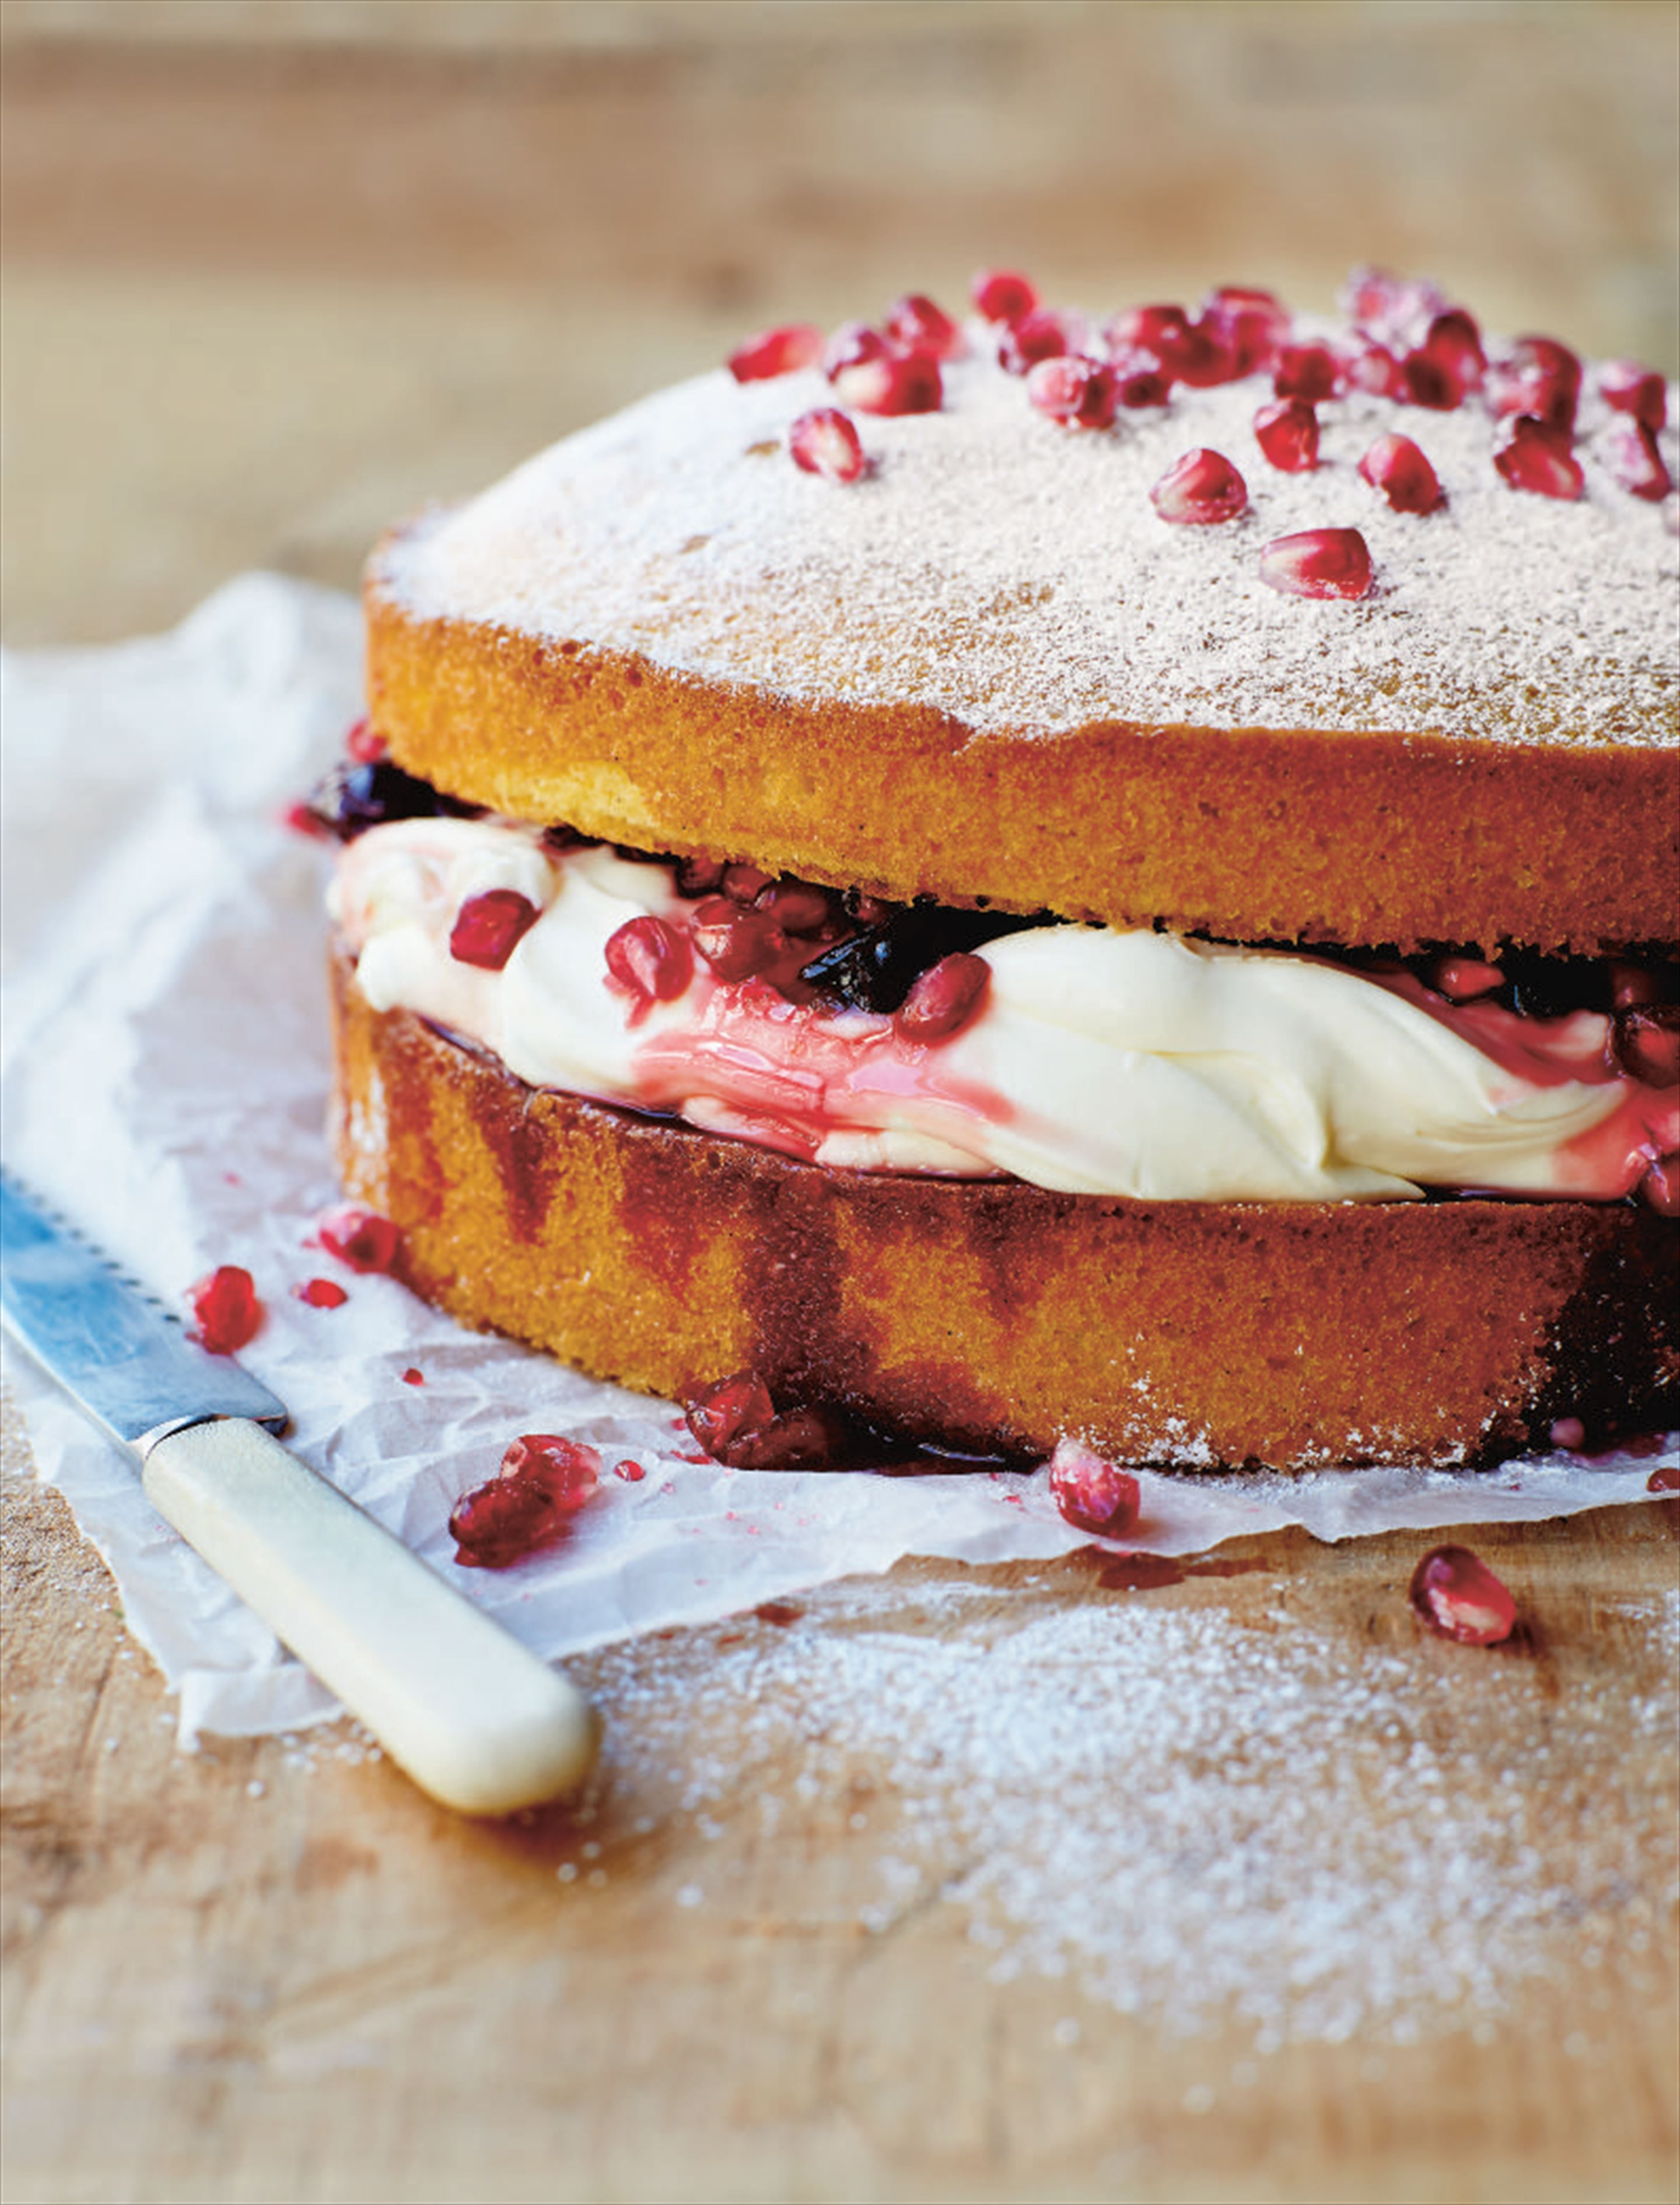 Pomegranate and sour cherry sponge cake